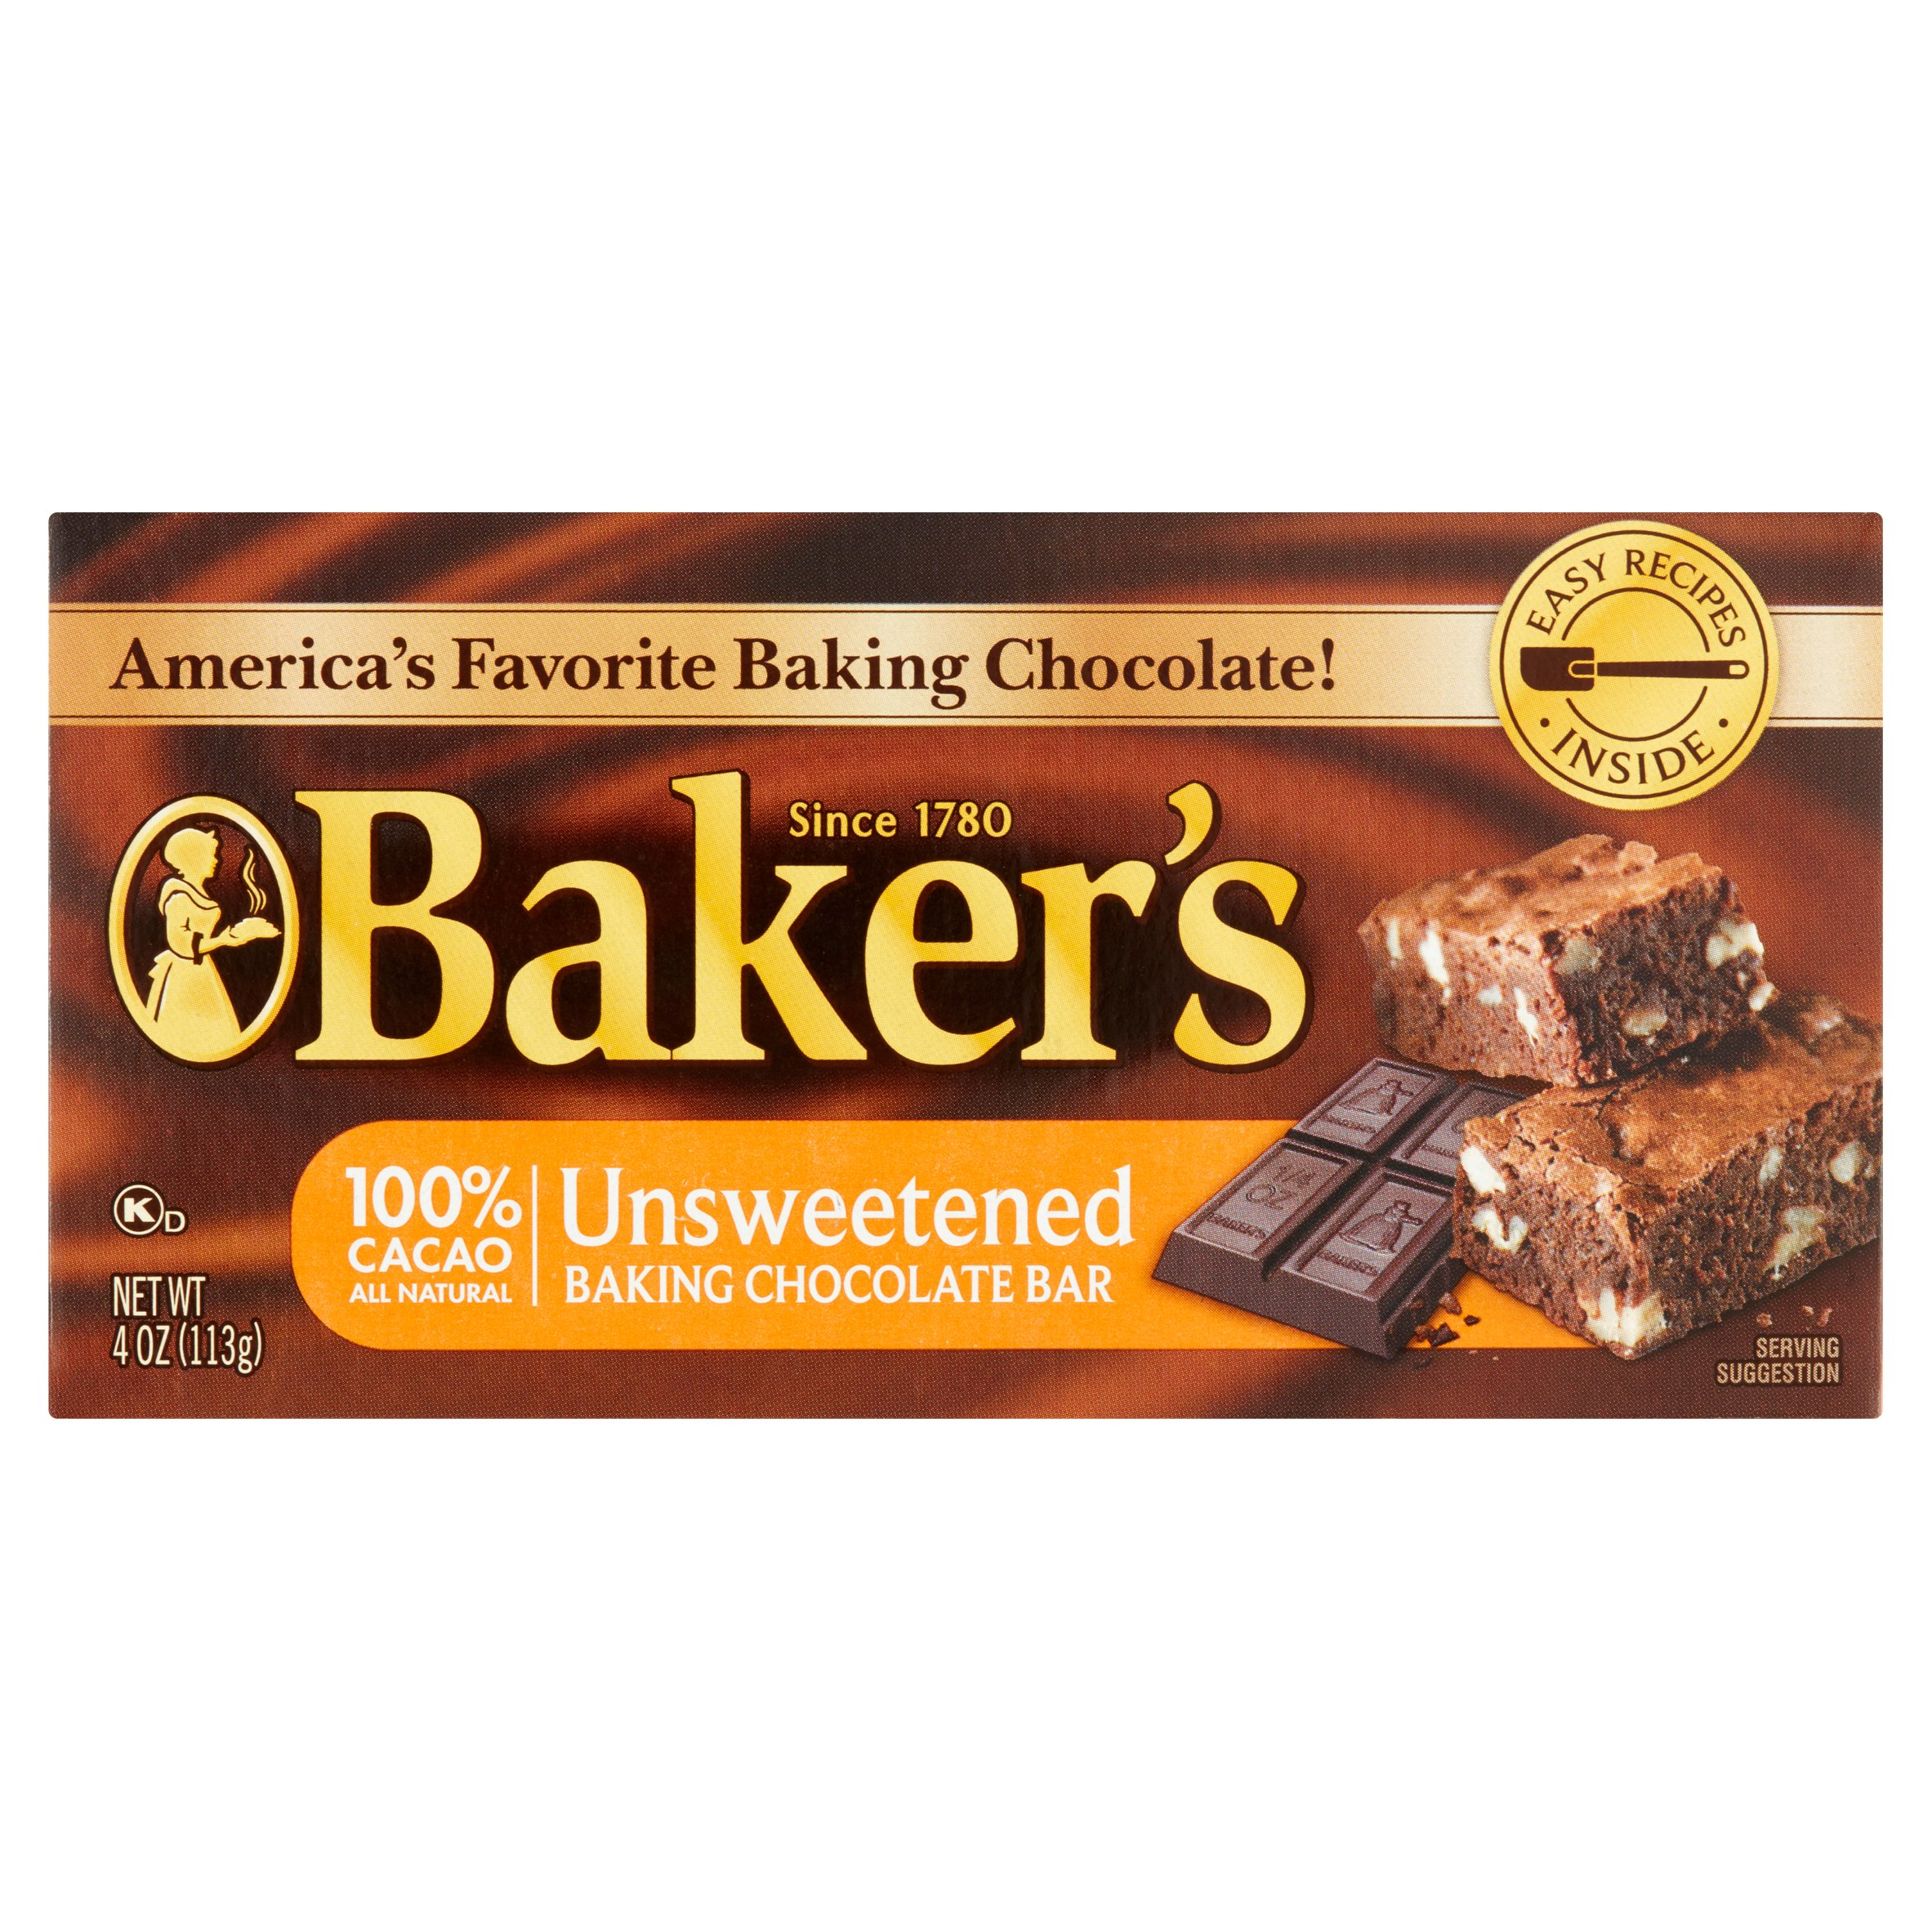 Baker's Baking Chocolate Bar 100% Cacao Unsweetened, 4 Oz by Kraft Foods Group, Inc.